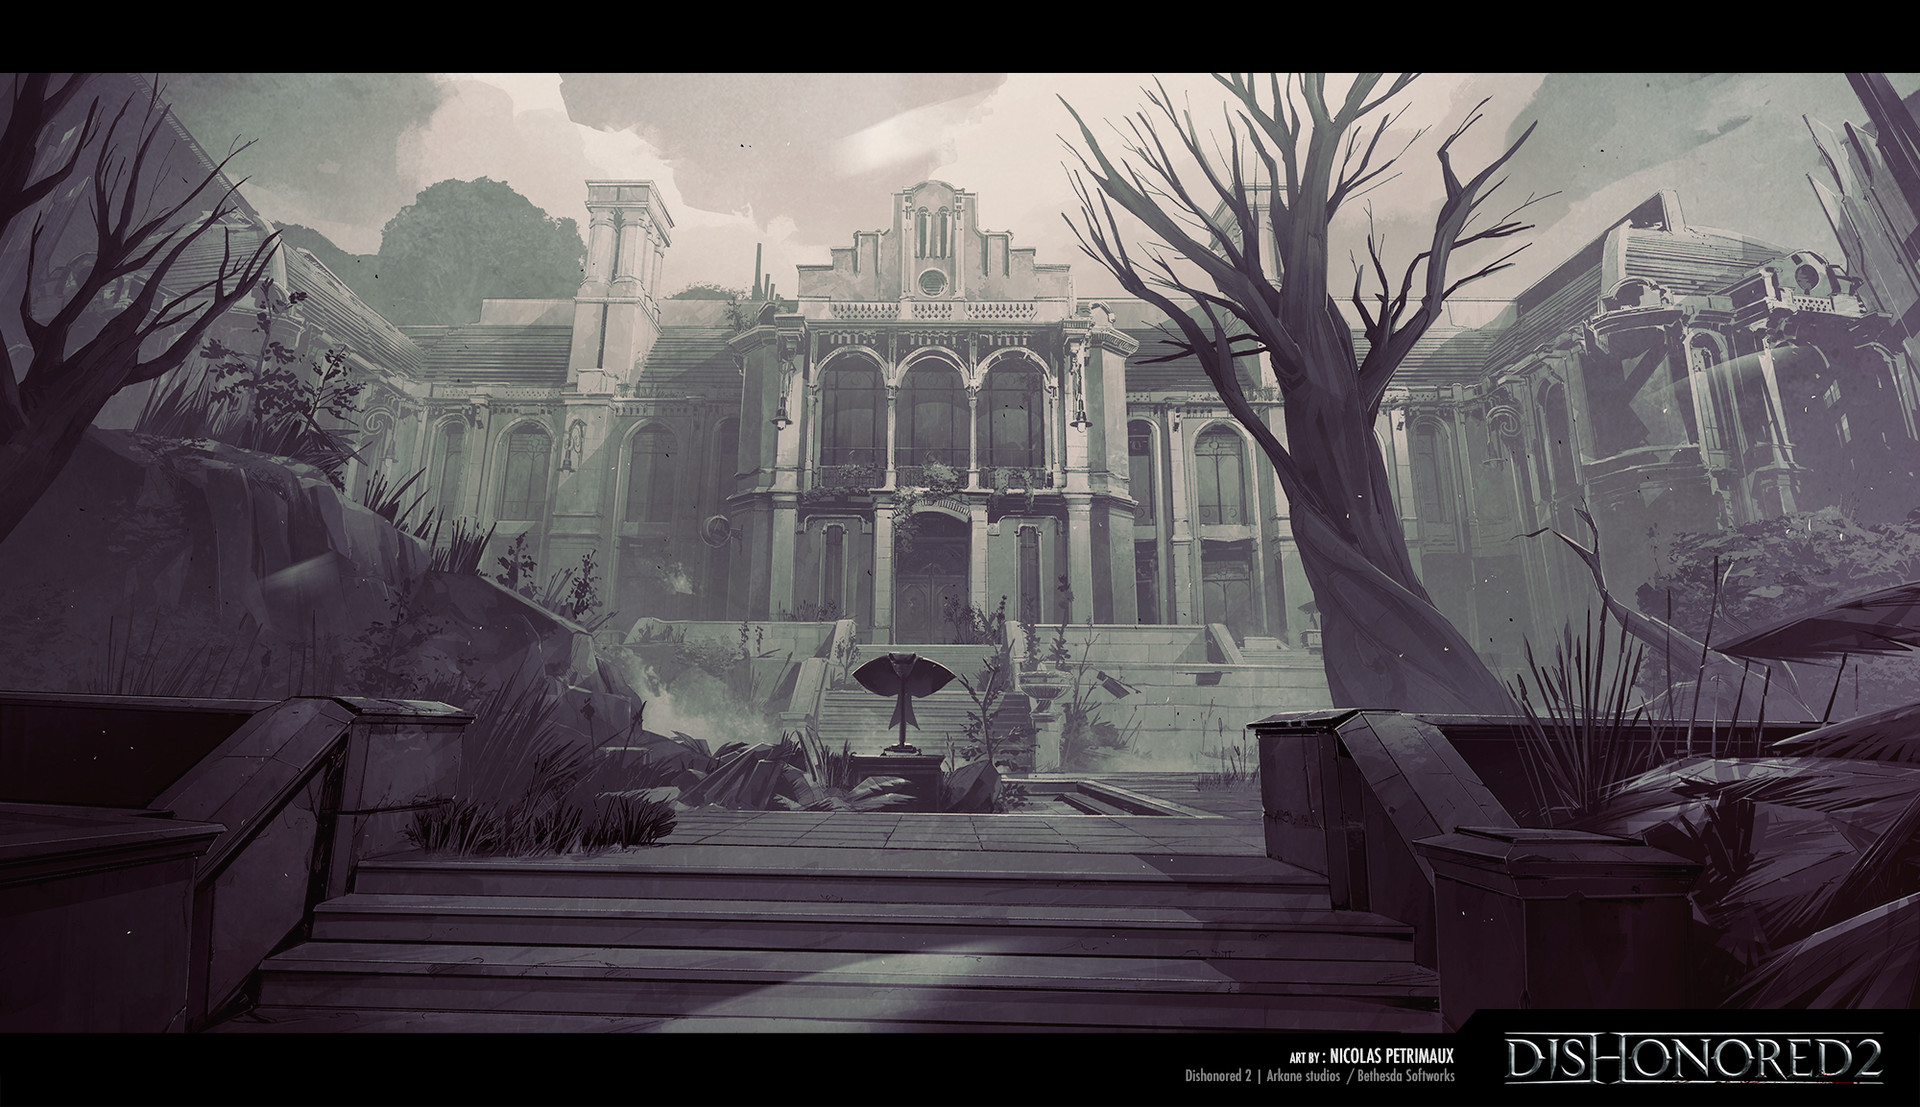 Dishonored 2 Art by Nicolas Petrimaux